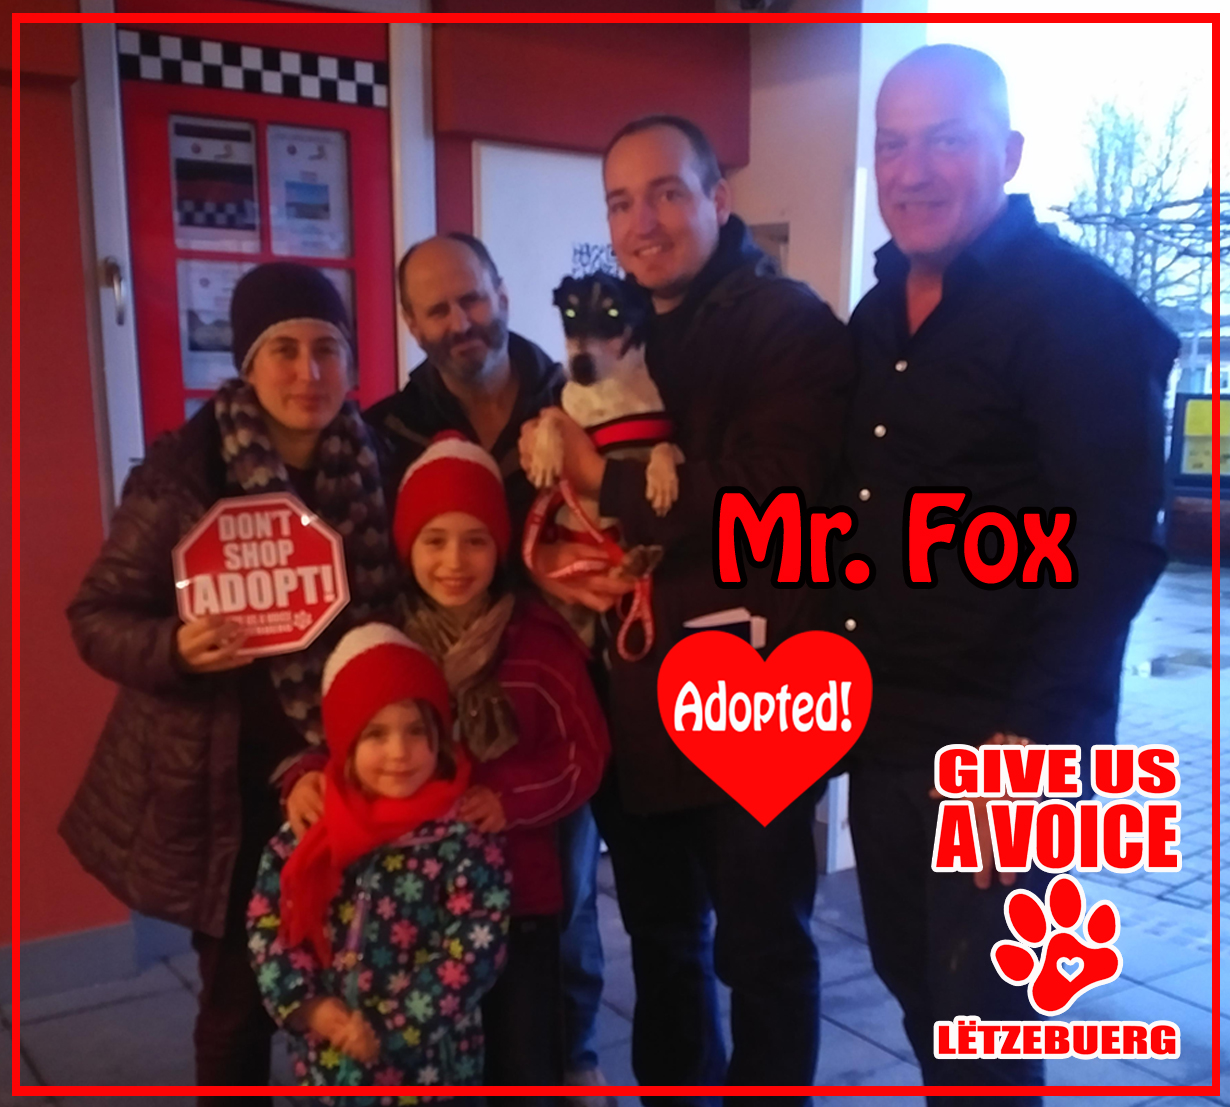 Mr. Fox Adopted! copy